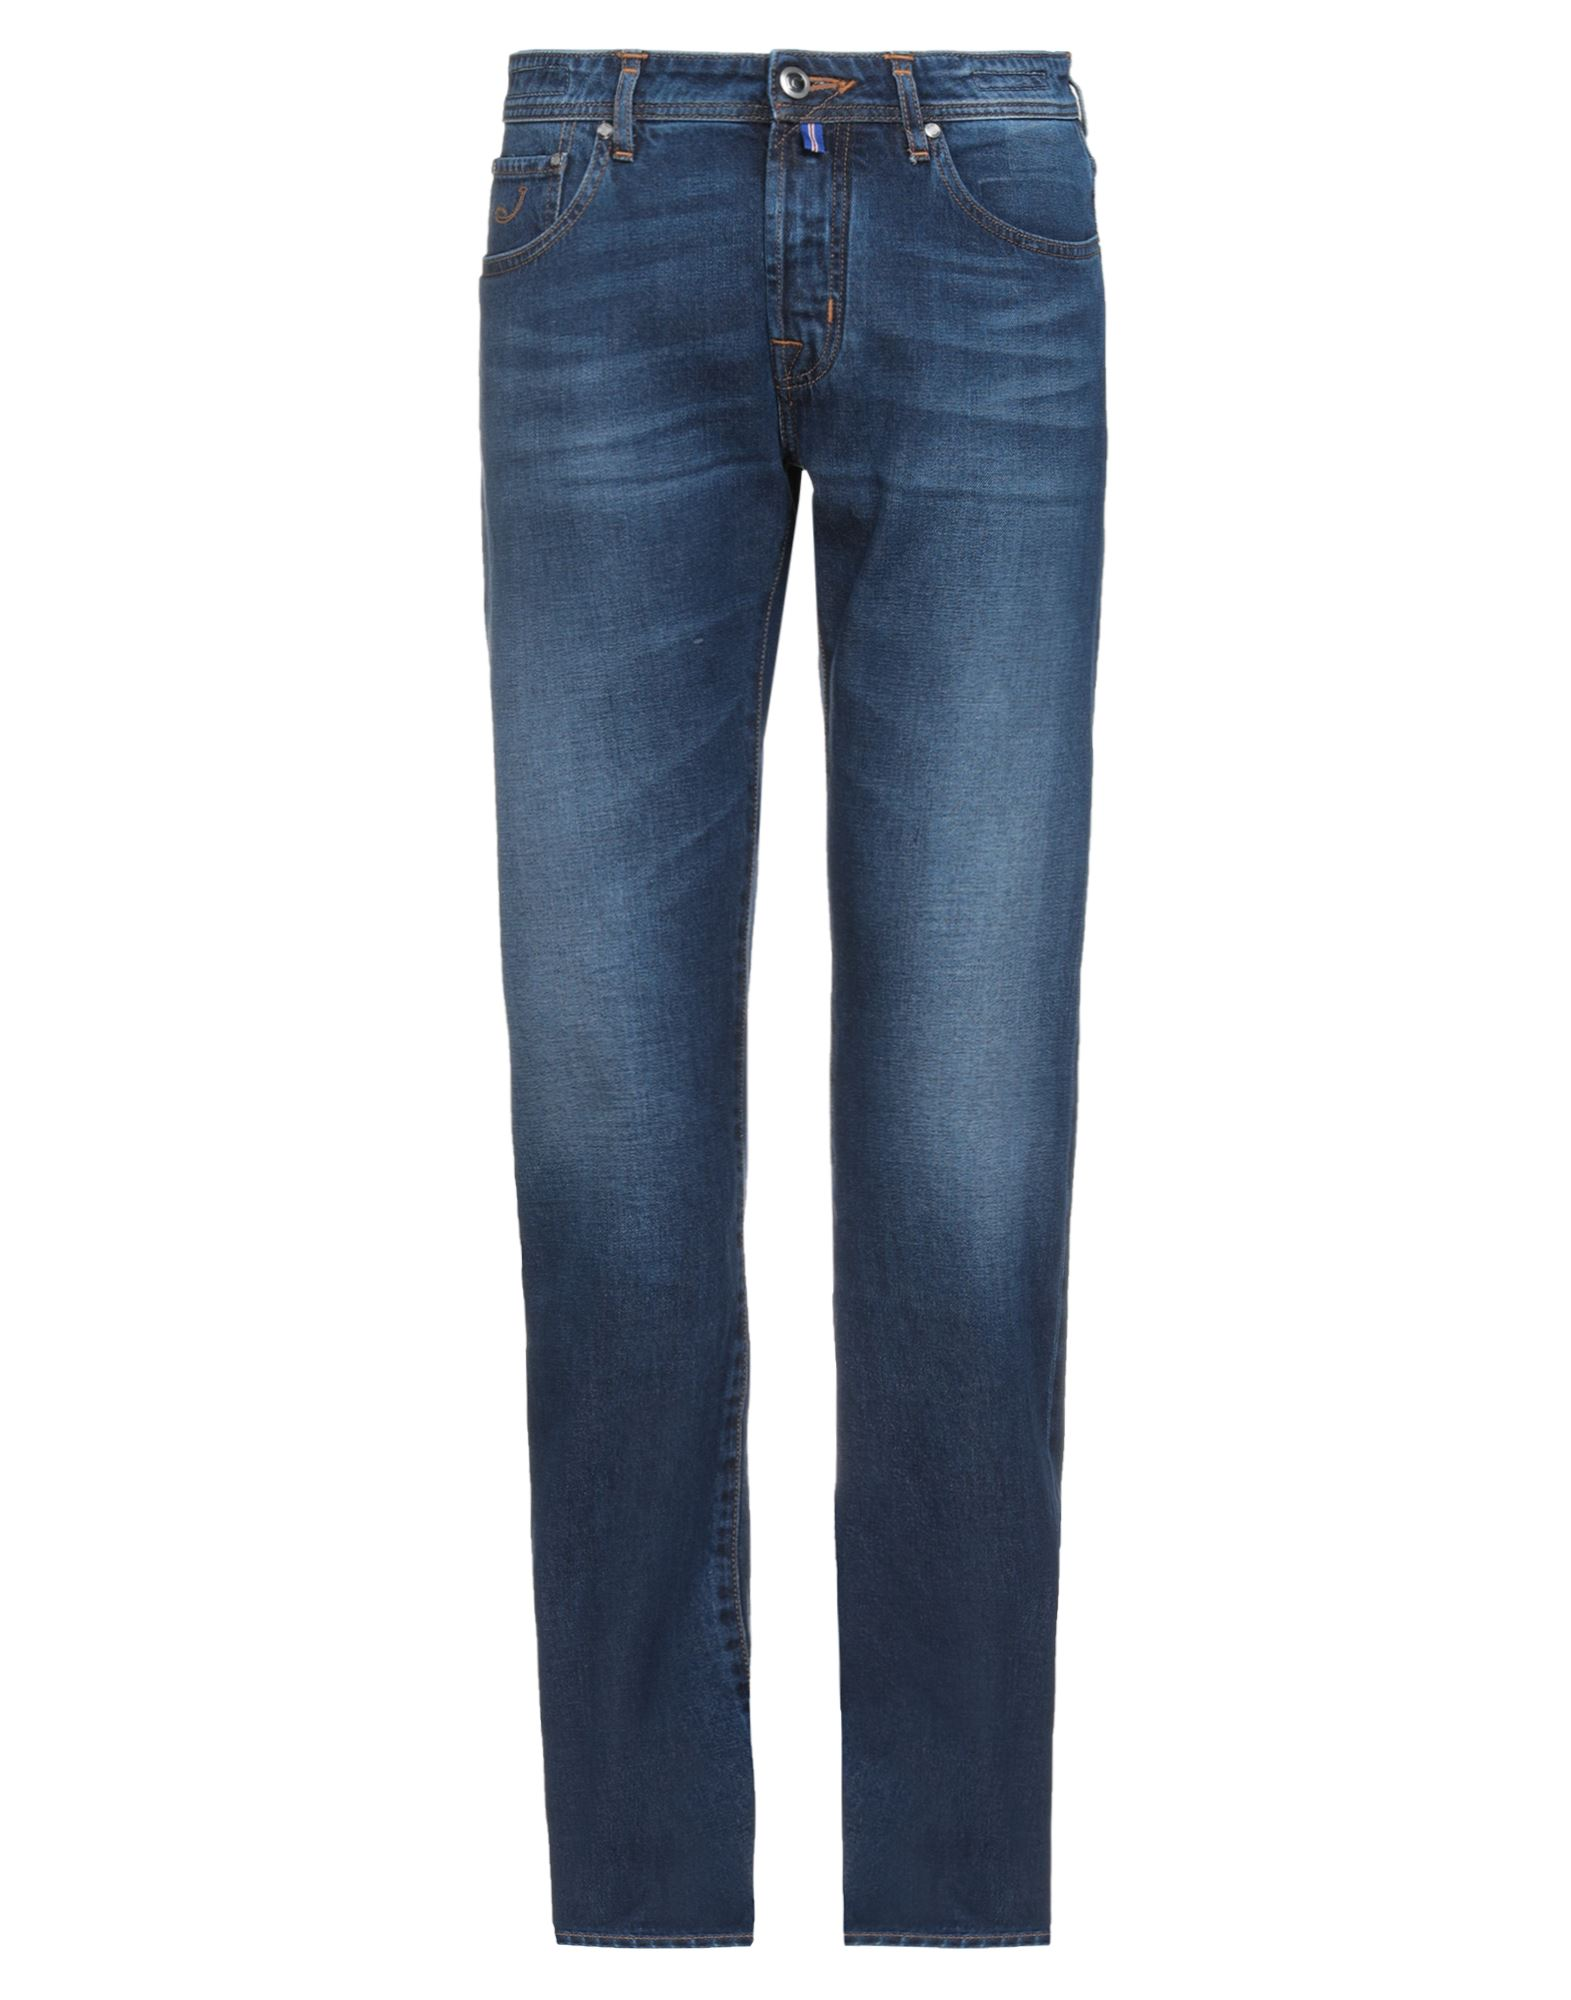 JACOB COHЁN Denim pants - Item 42833718